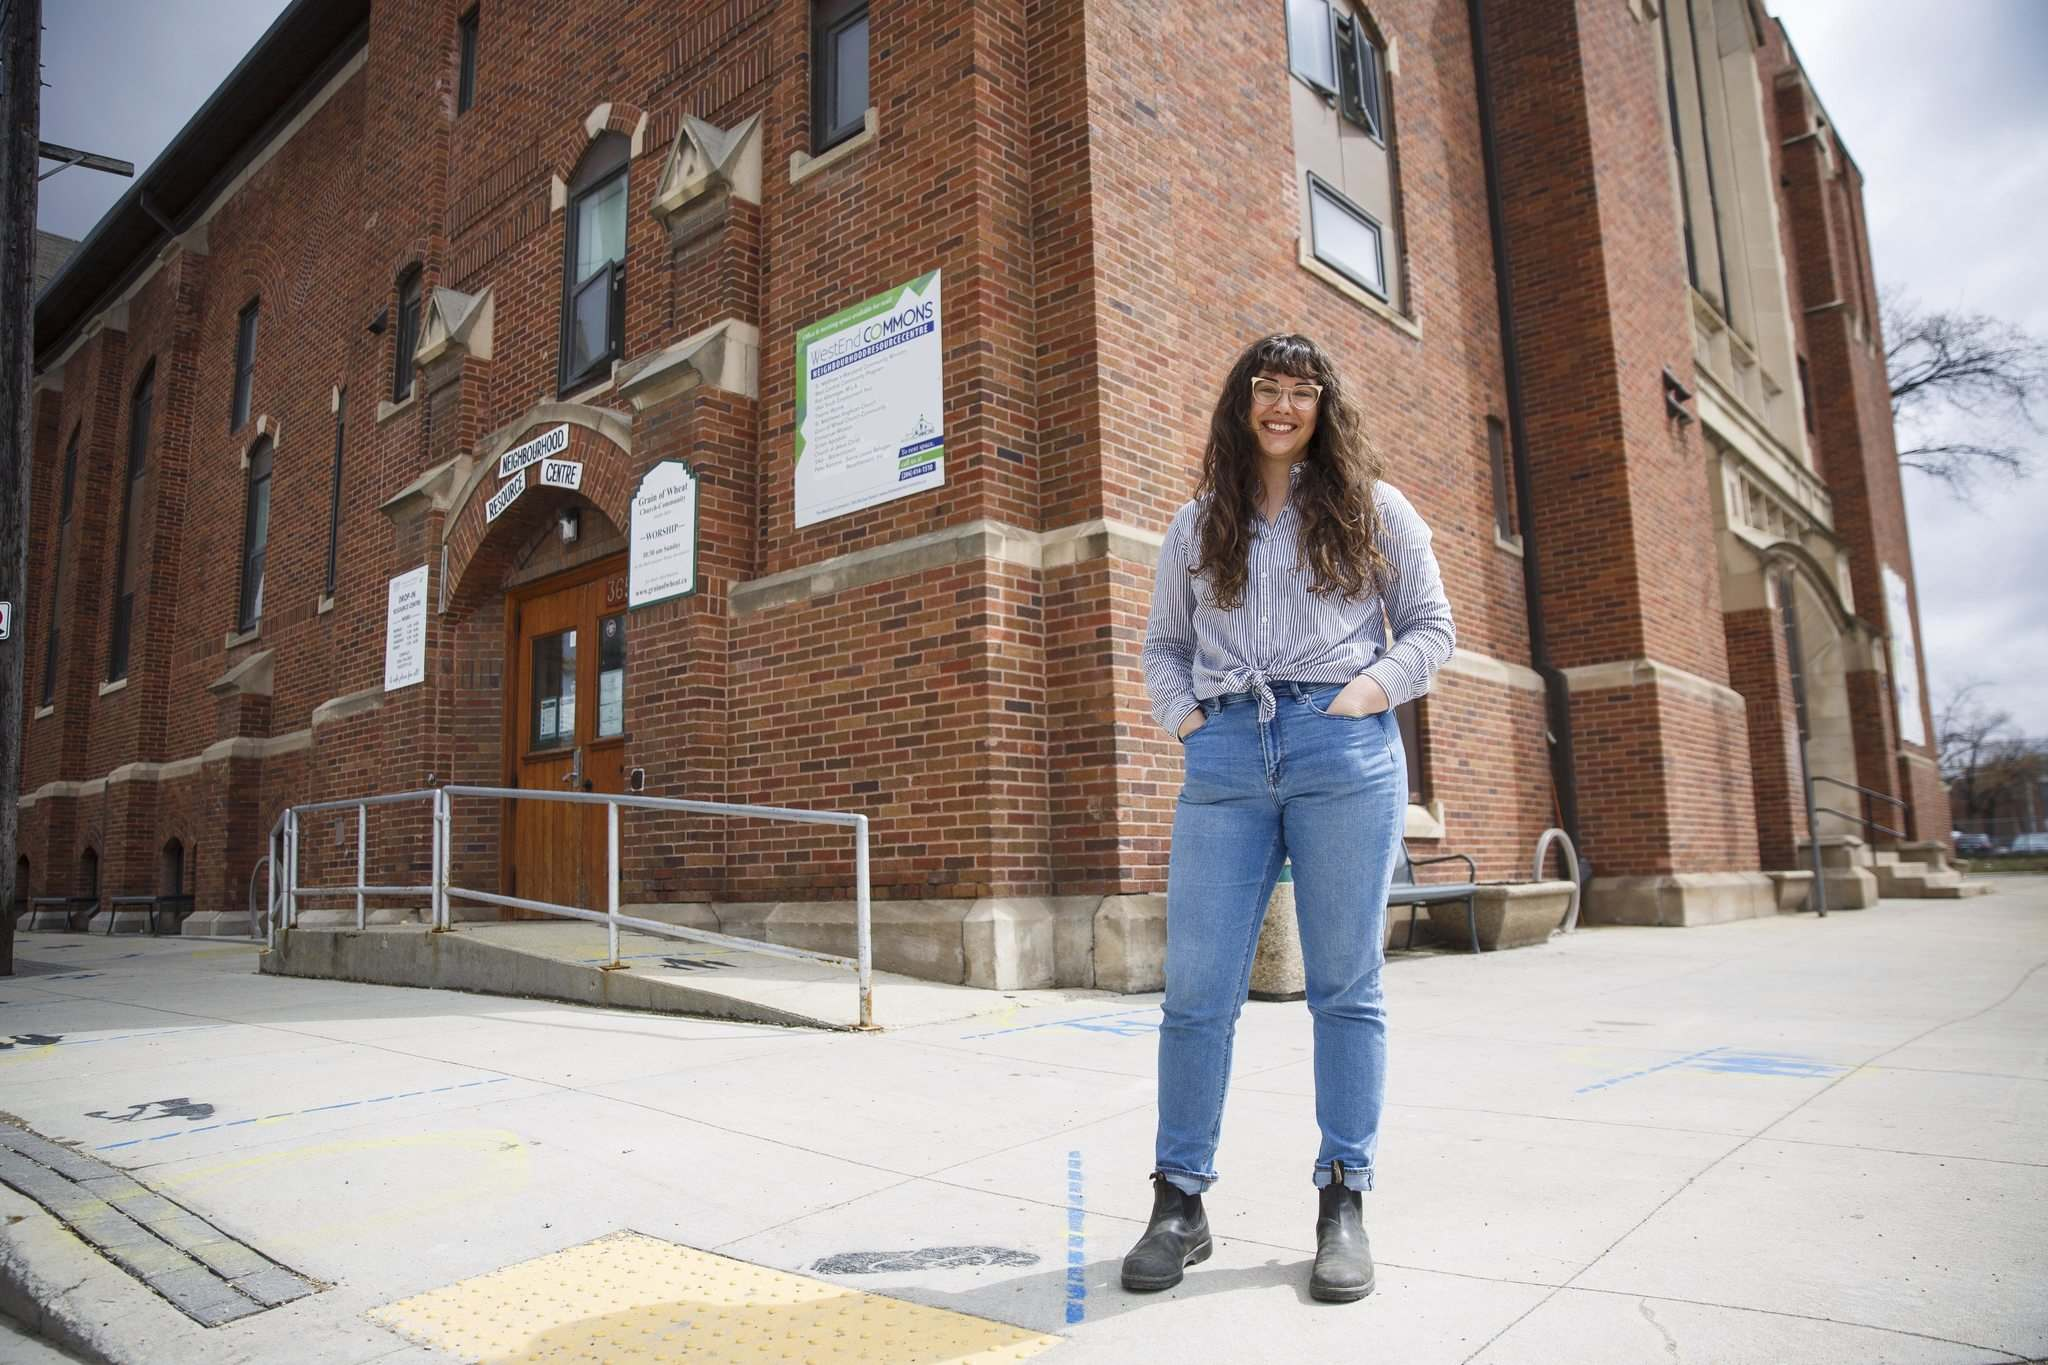 Caileigh Morrison says she's not the type to just sit around, so when she was laid off, she started looking for volunteer opportunities. She's fit right in at 1Just City. (Mike Deal / Winnipeg Free Press)</p>